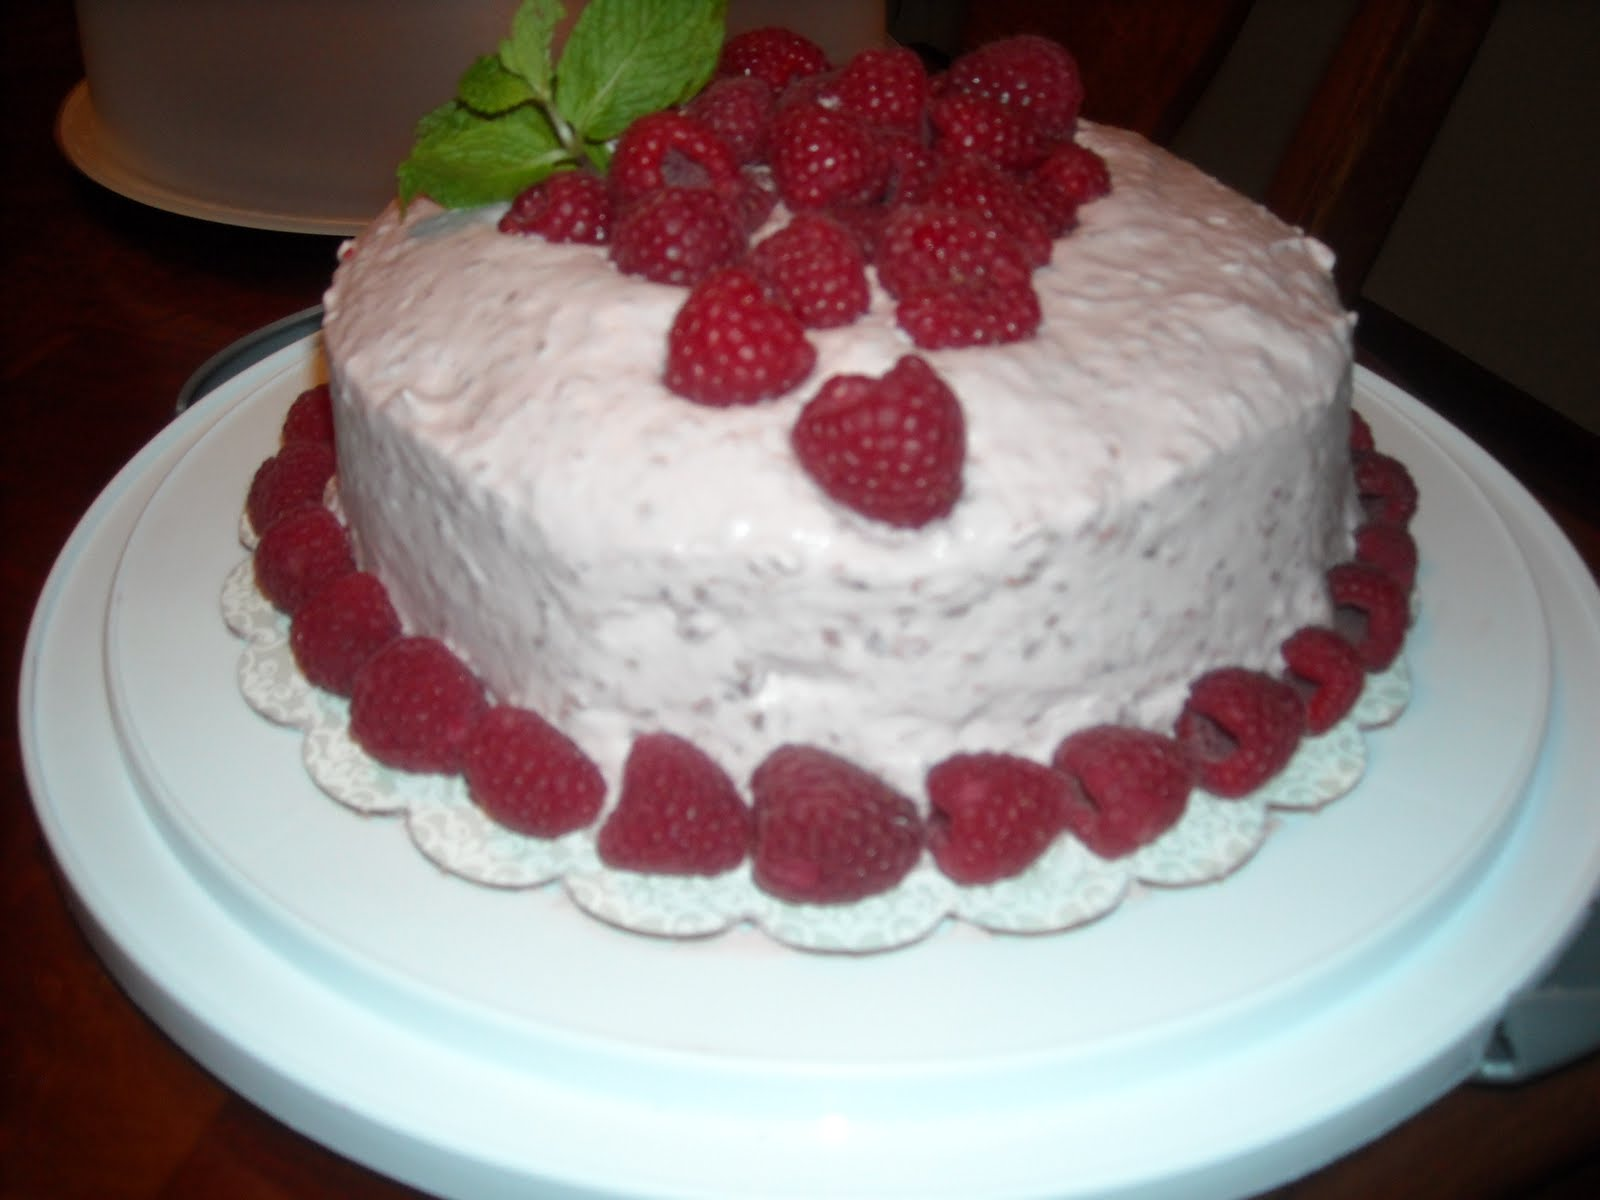 Pin Raspberry Whipped Cream Icing Puree Filling Lemon Cake Cake on ...